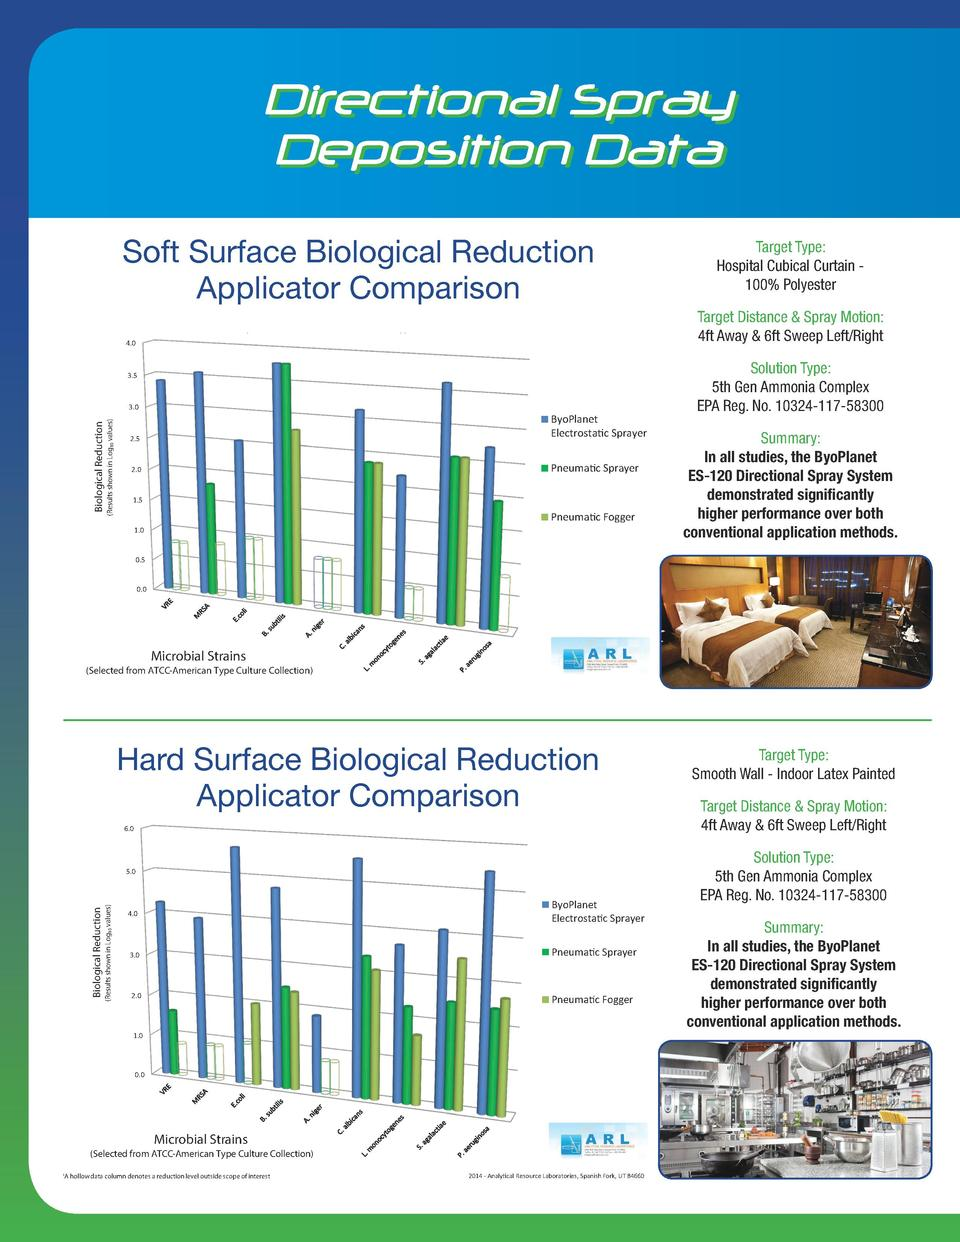 Directional Spray Deposition Data Applicator Comparison Soft Surface Biological Reduction Applicator Comparison Soft Surfa...